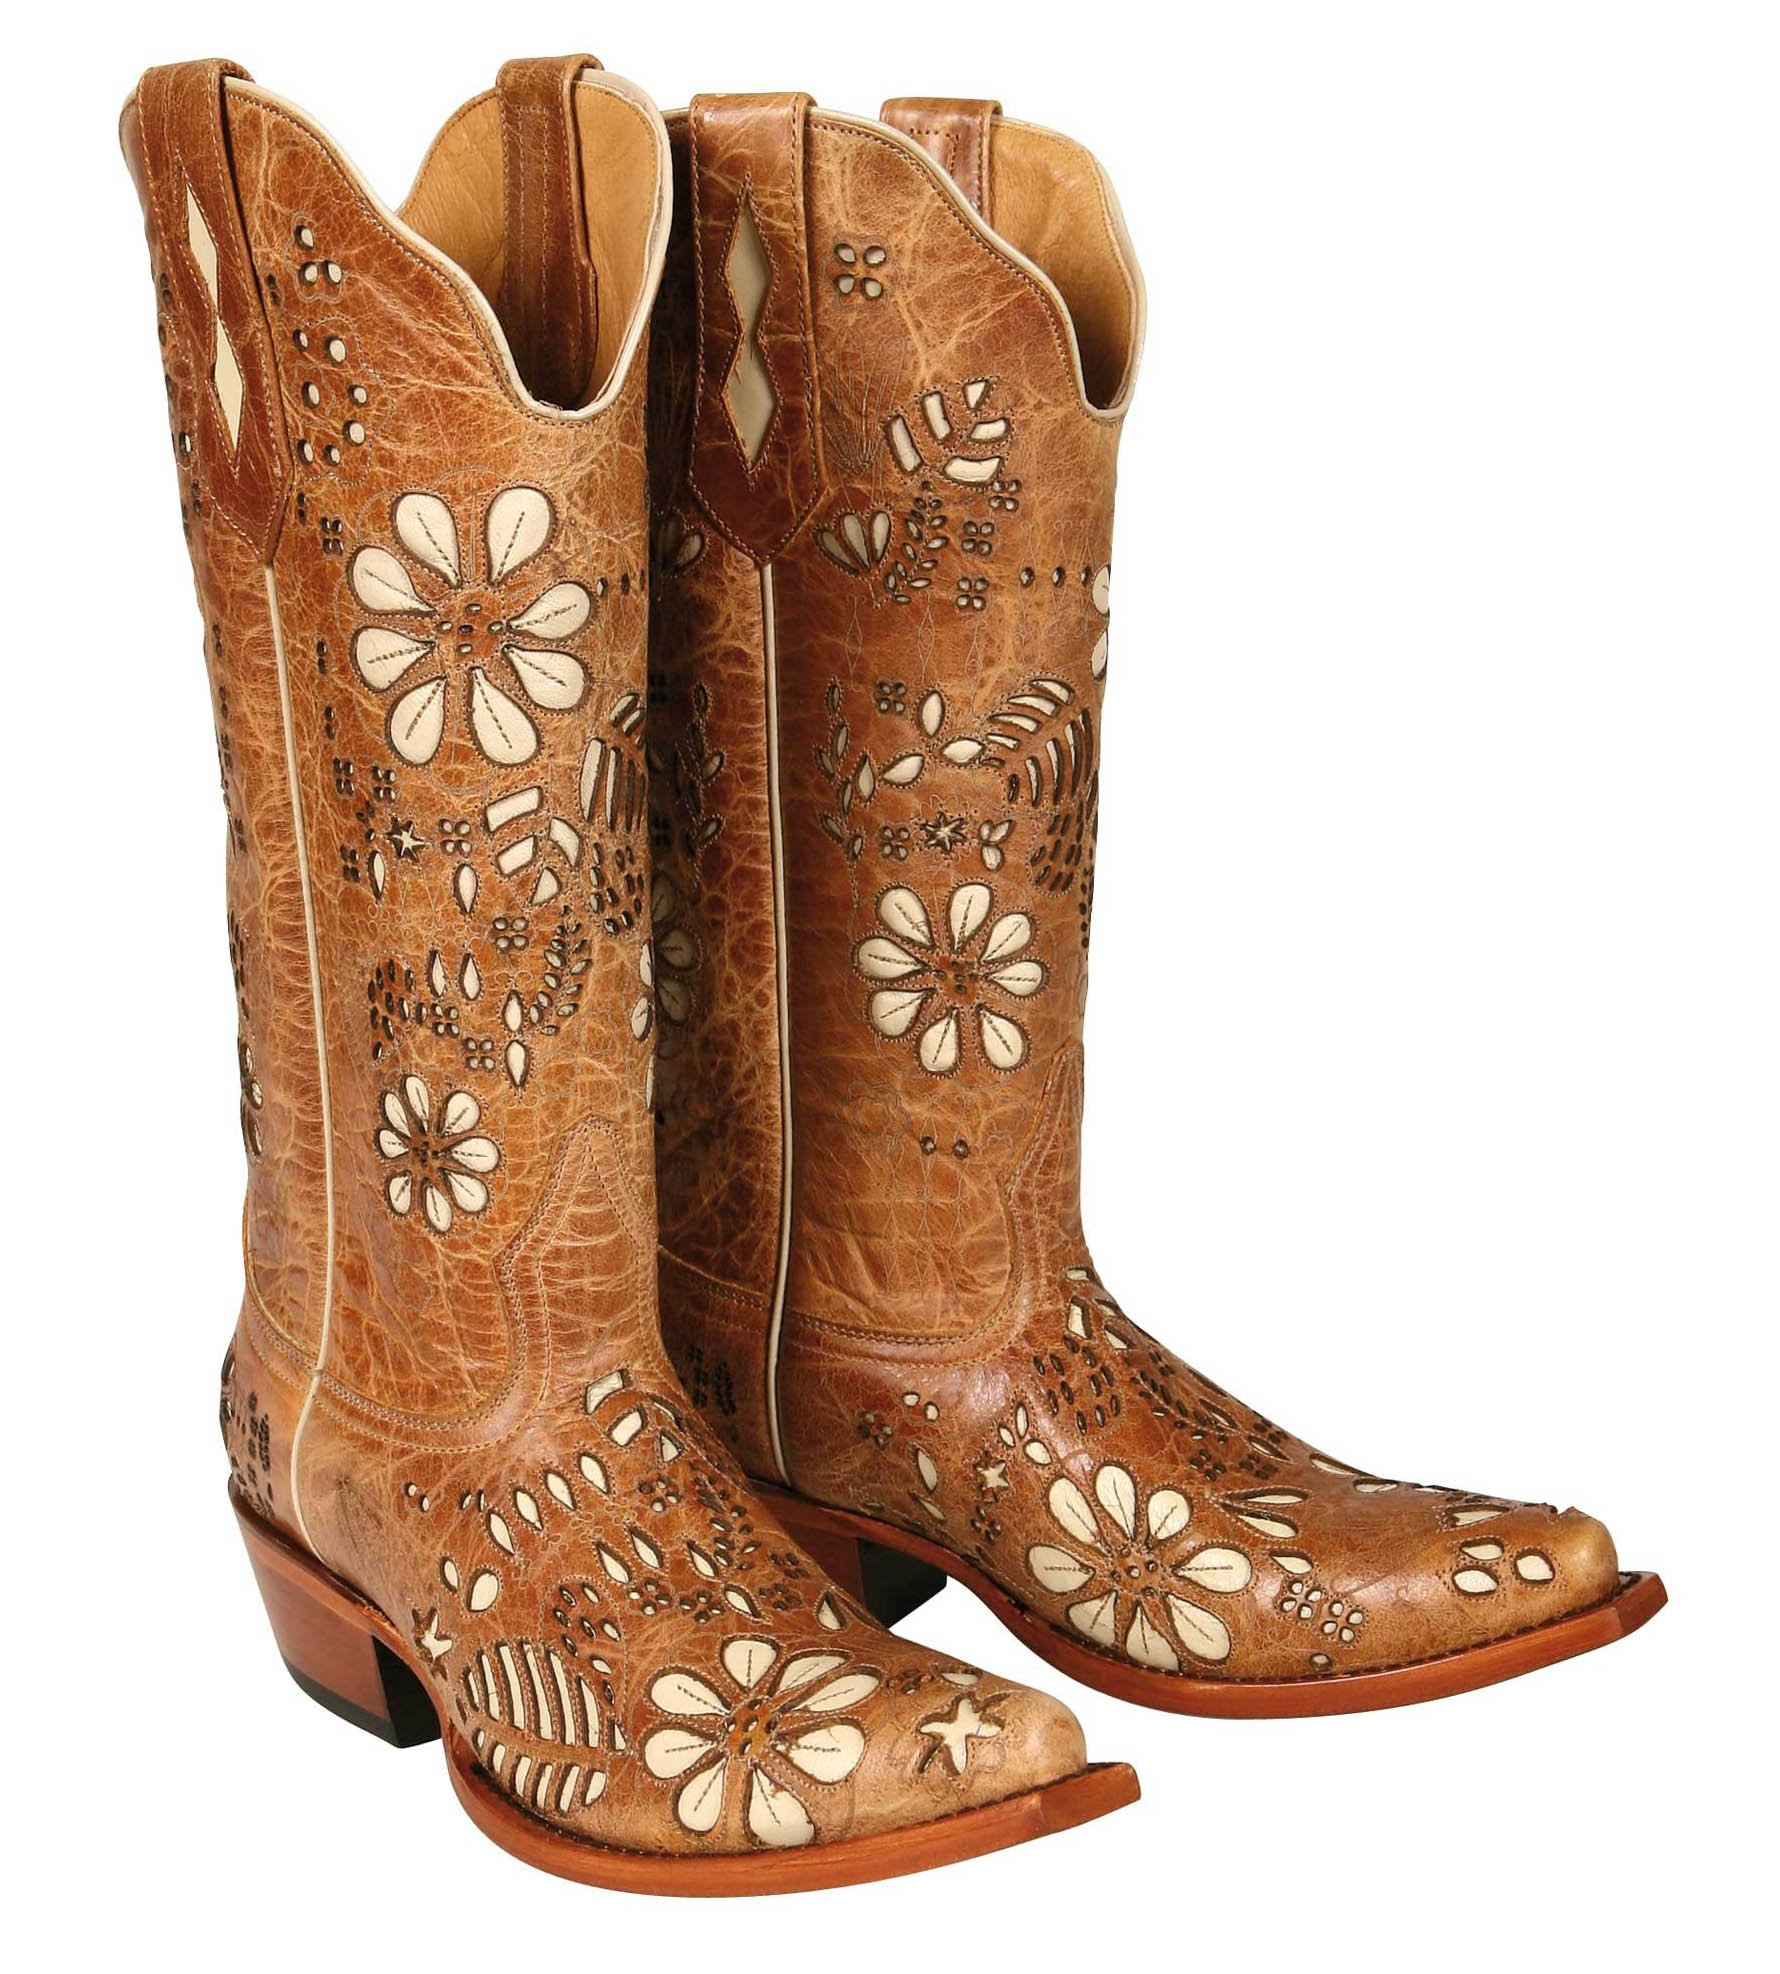 Johnny Ringo Womens Western Boot T- Toe Antique Tan Bison Leather 628-18T B(M)